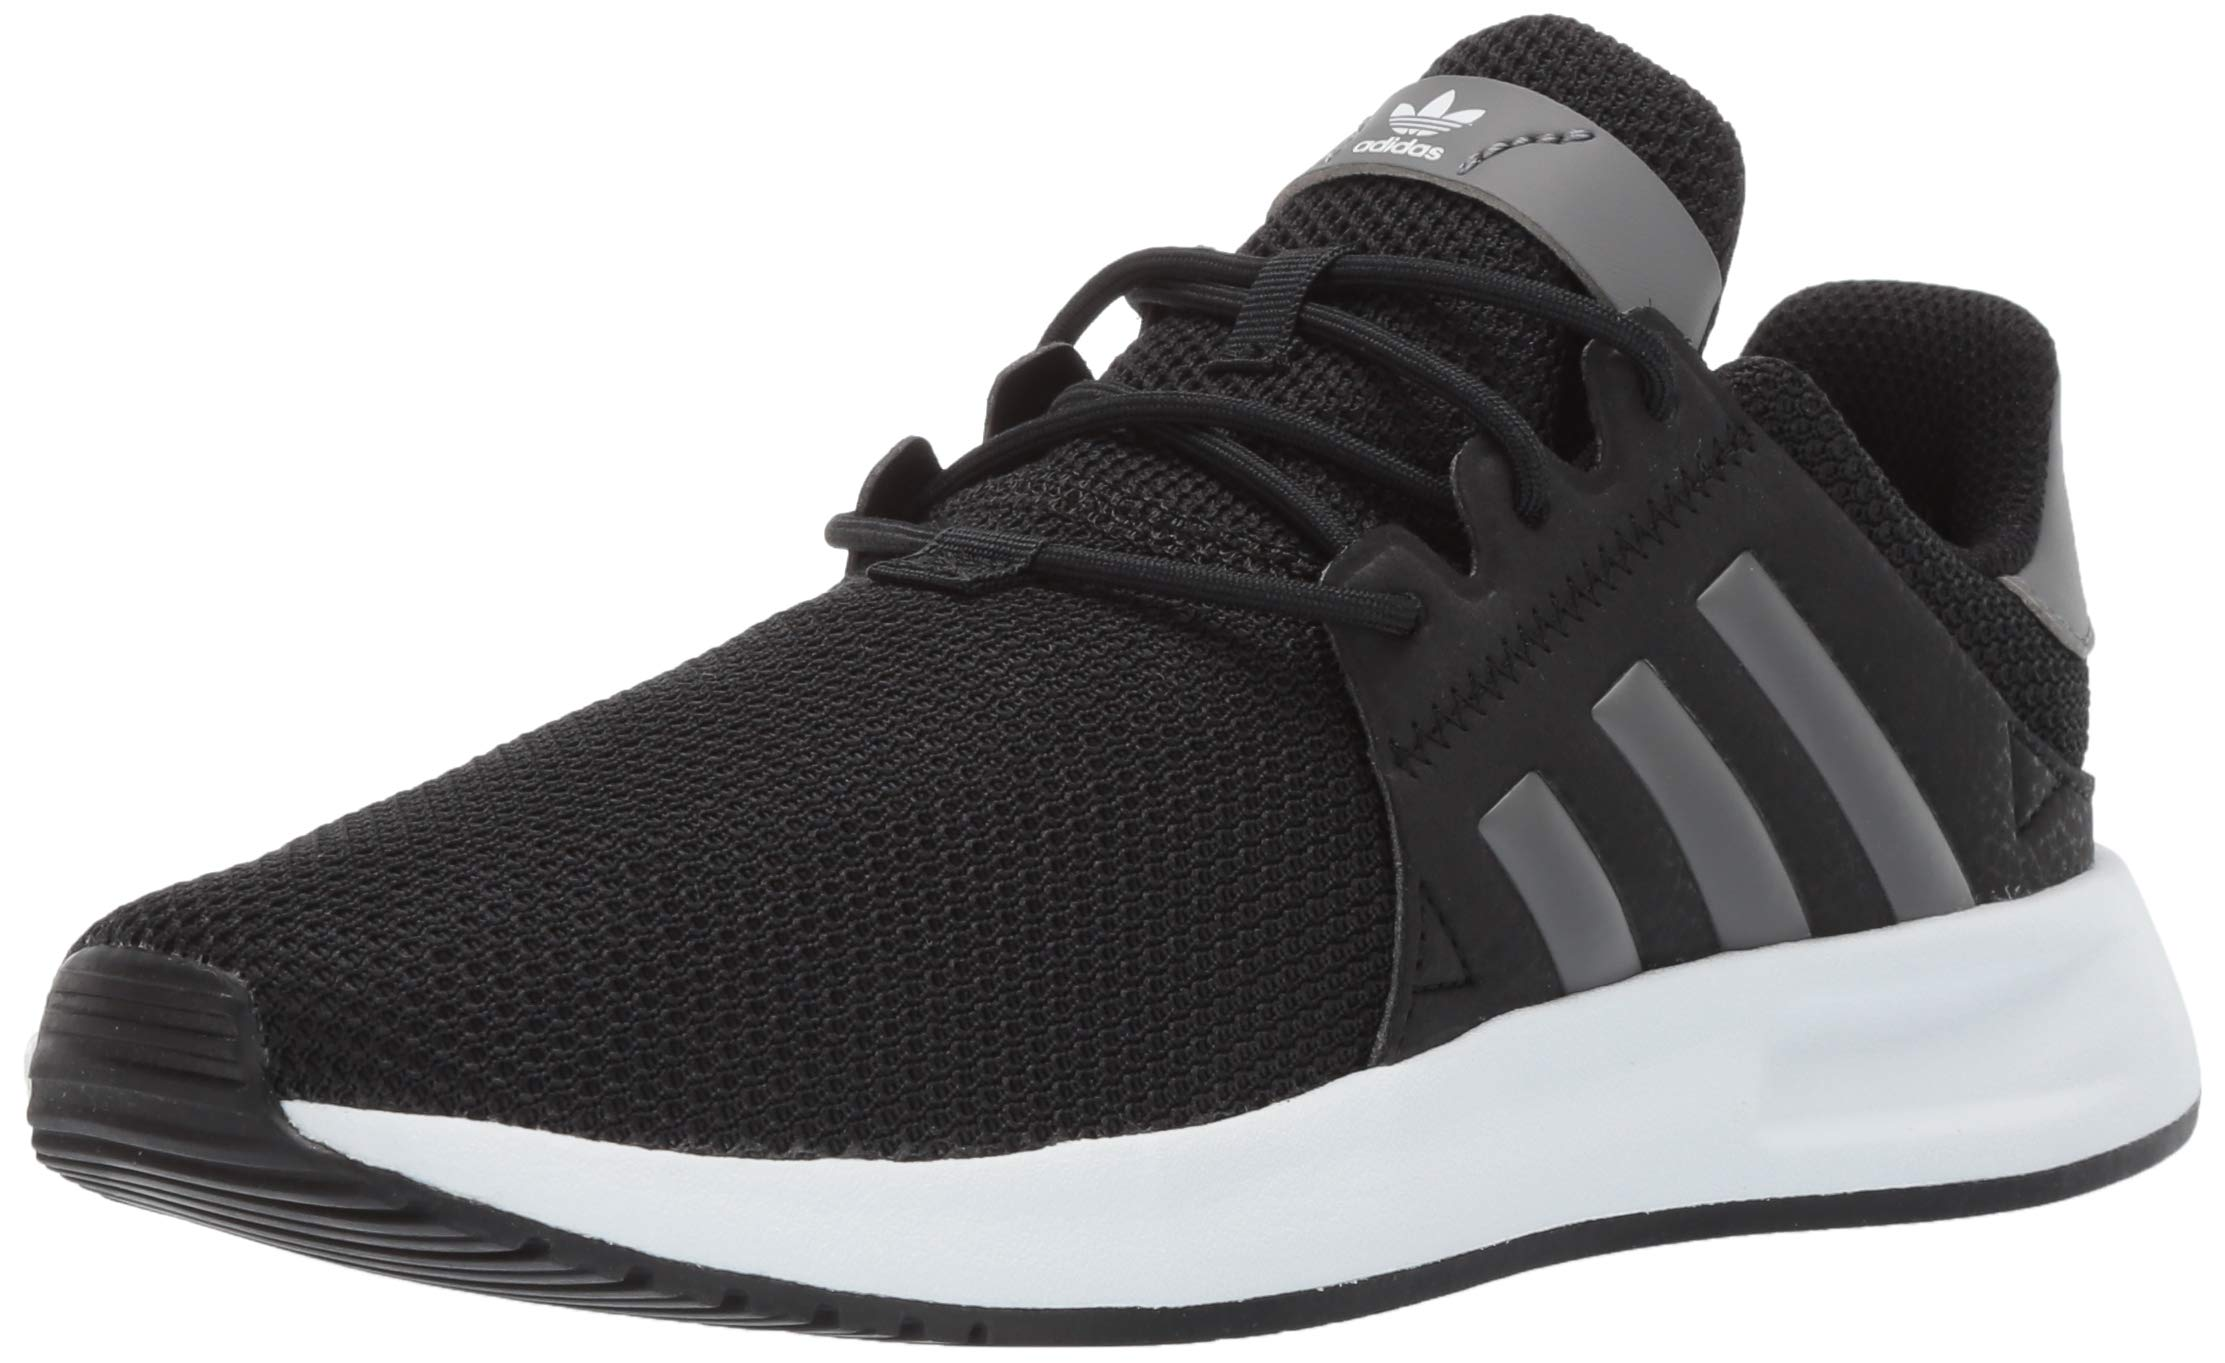 adidas Originals Baby X_PLR Running Shoe, Black/Grey/White, 9.5K M US Toddler